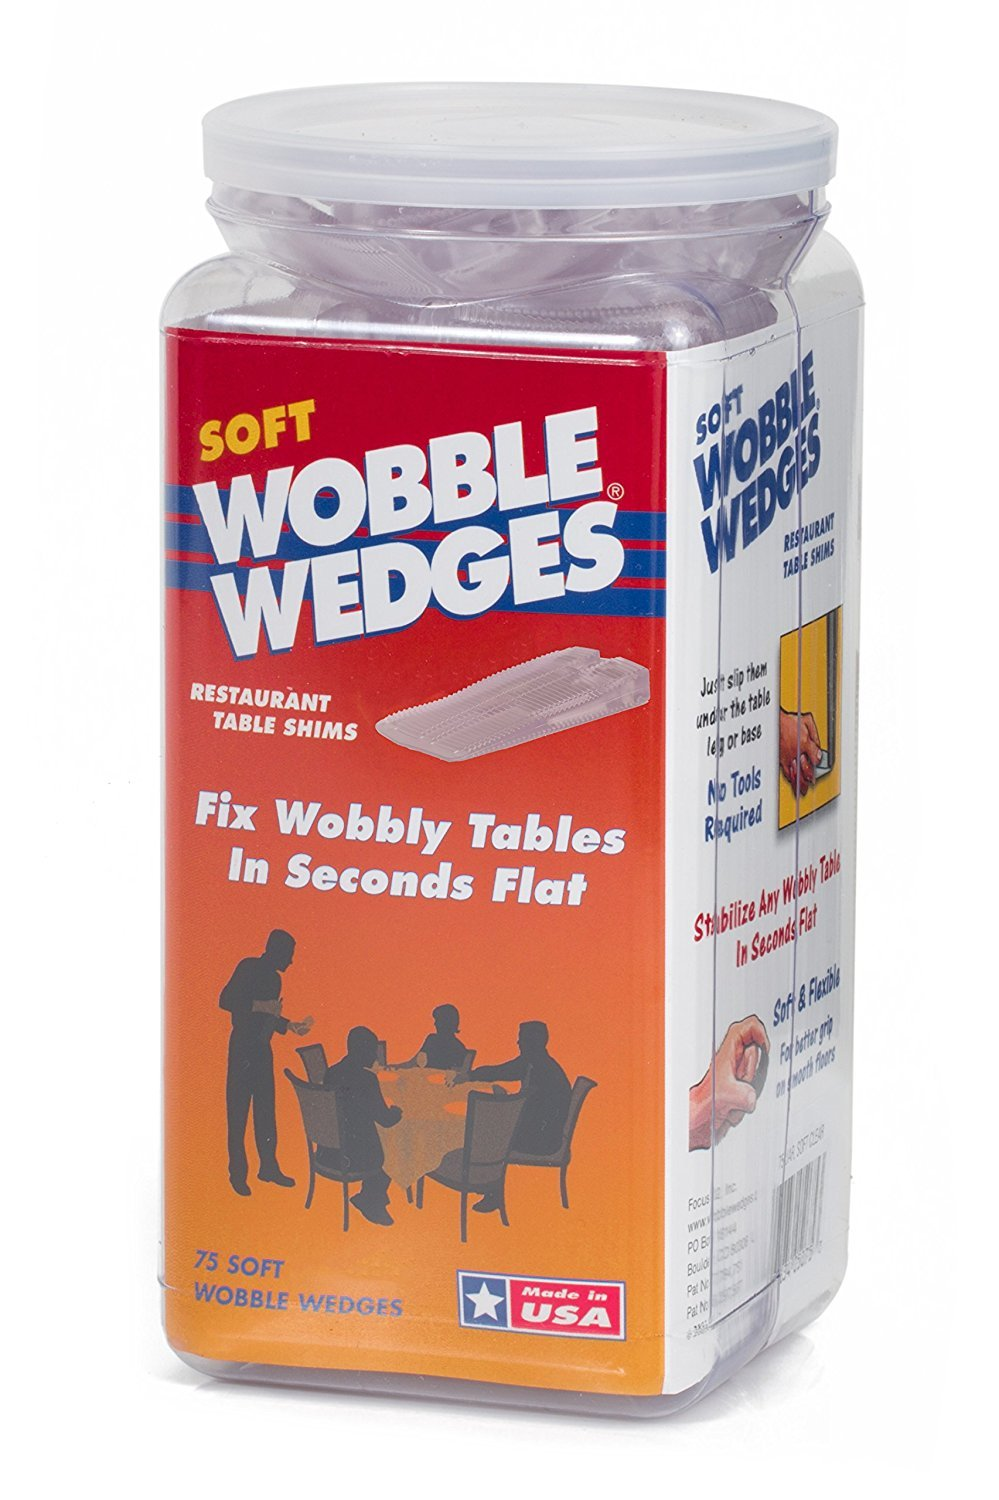 Wobble Wedges Multi-Purpose Shims-Soft Clear 75 pack -Easy to Trim -Protect Delicate Surfaces -Level Restaurant Tables, Household Furniture and Plumbing Fixtures -Use as Clamping Pad on Angled Surface by WOBBLE WEDGES